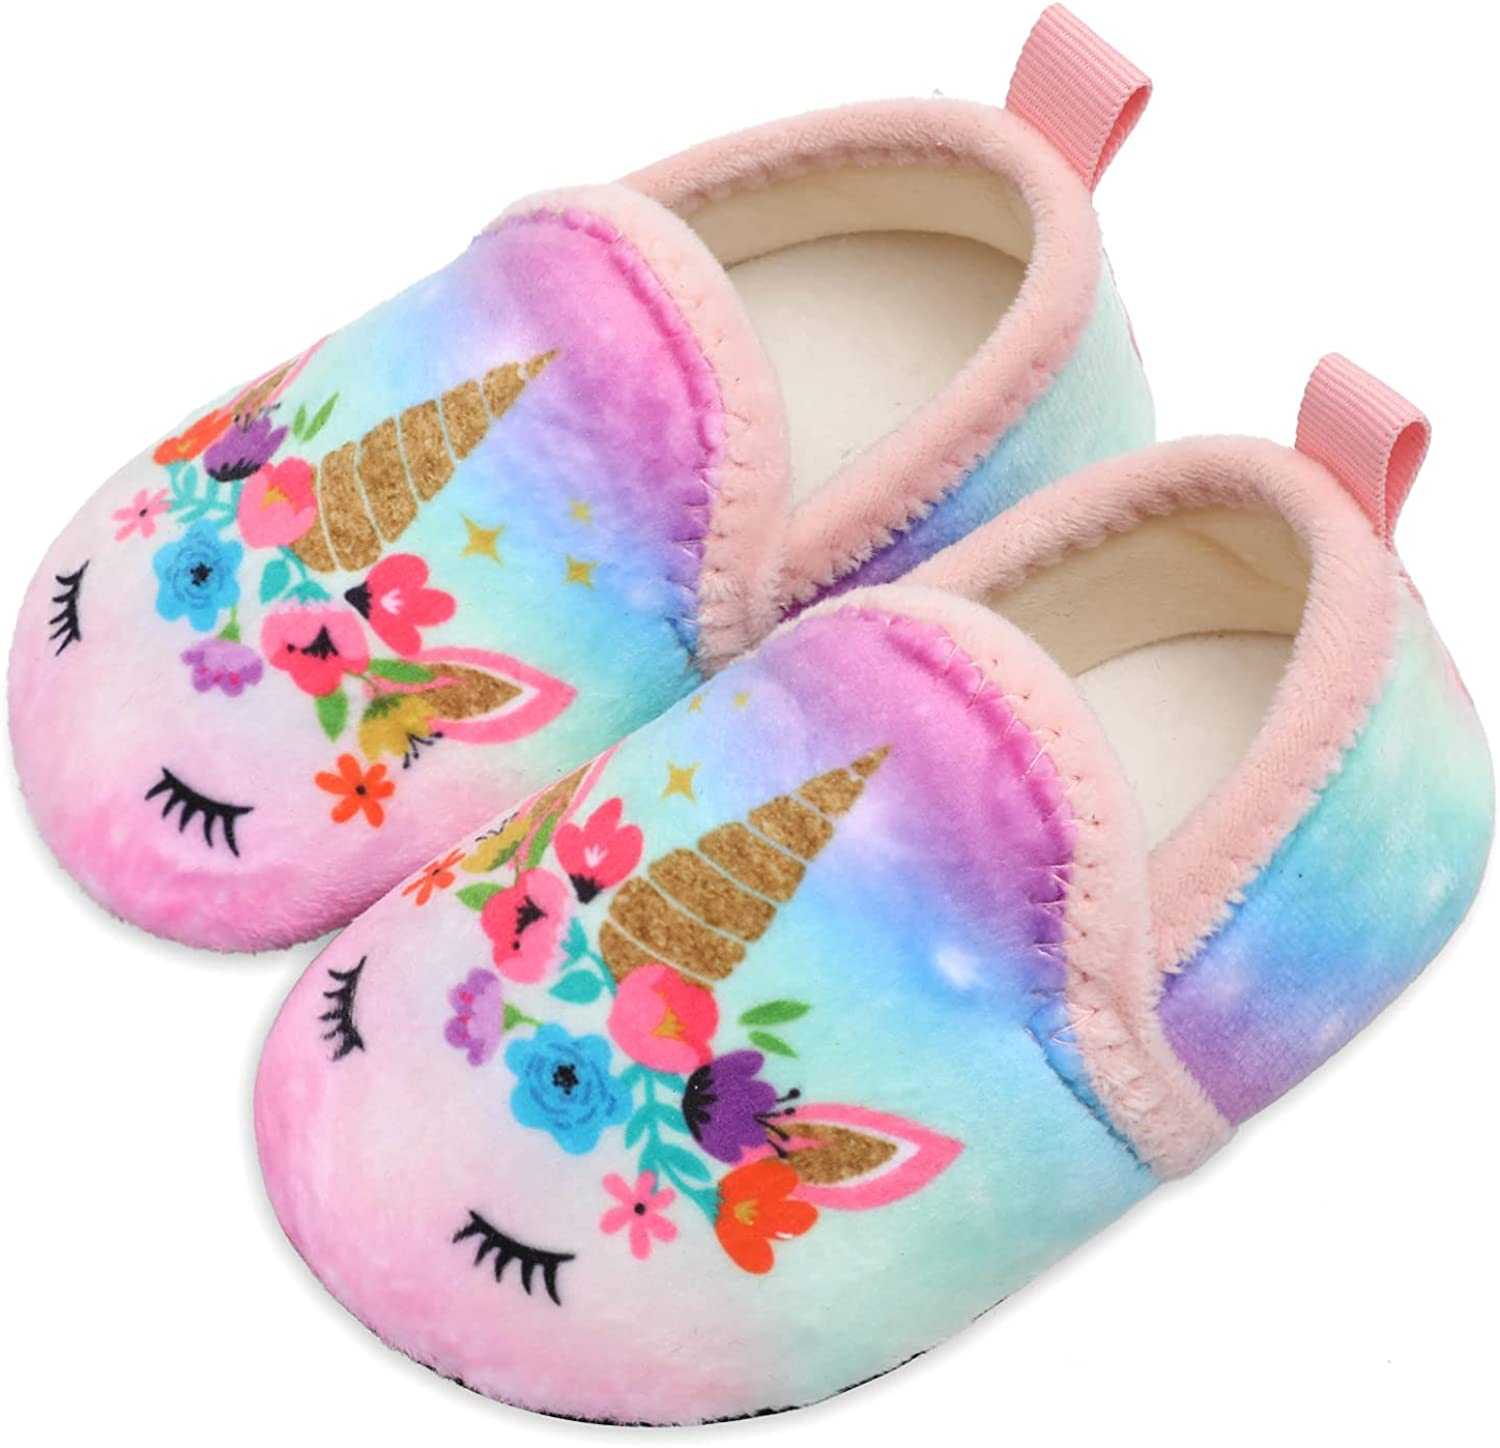 Lisdwde Kids Winter Indoor Household Girls Shoes Max 69% OFF Boys Max 74% OFF Toddler Ho